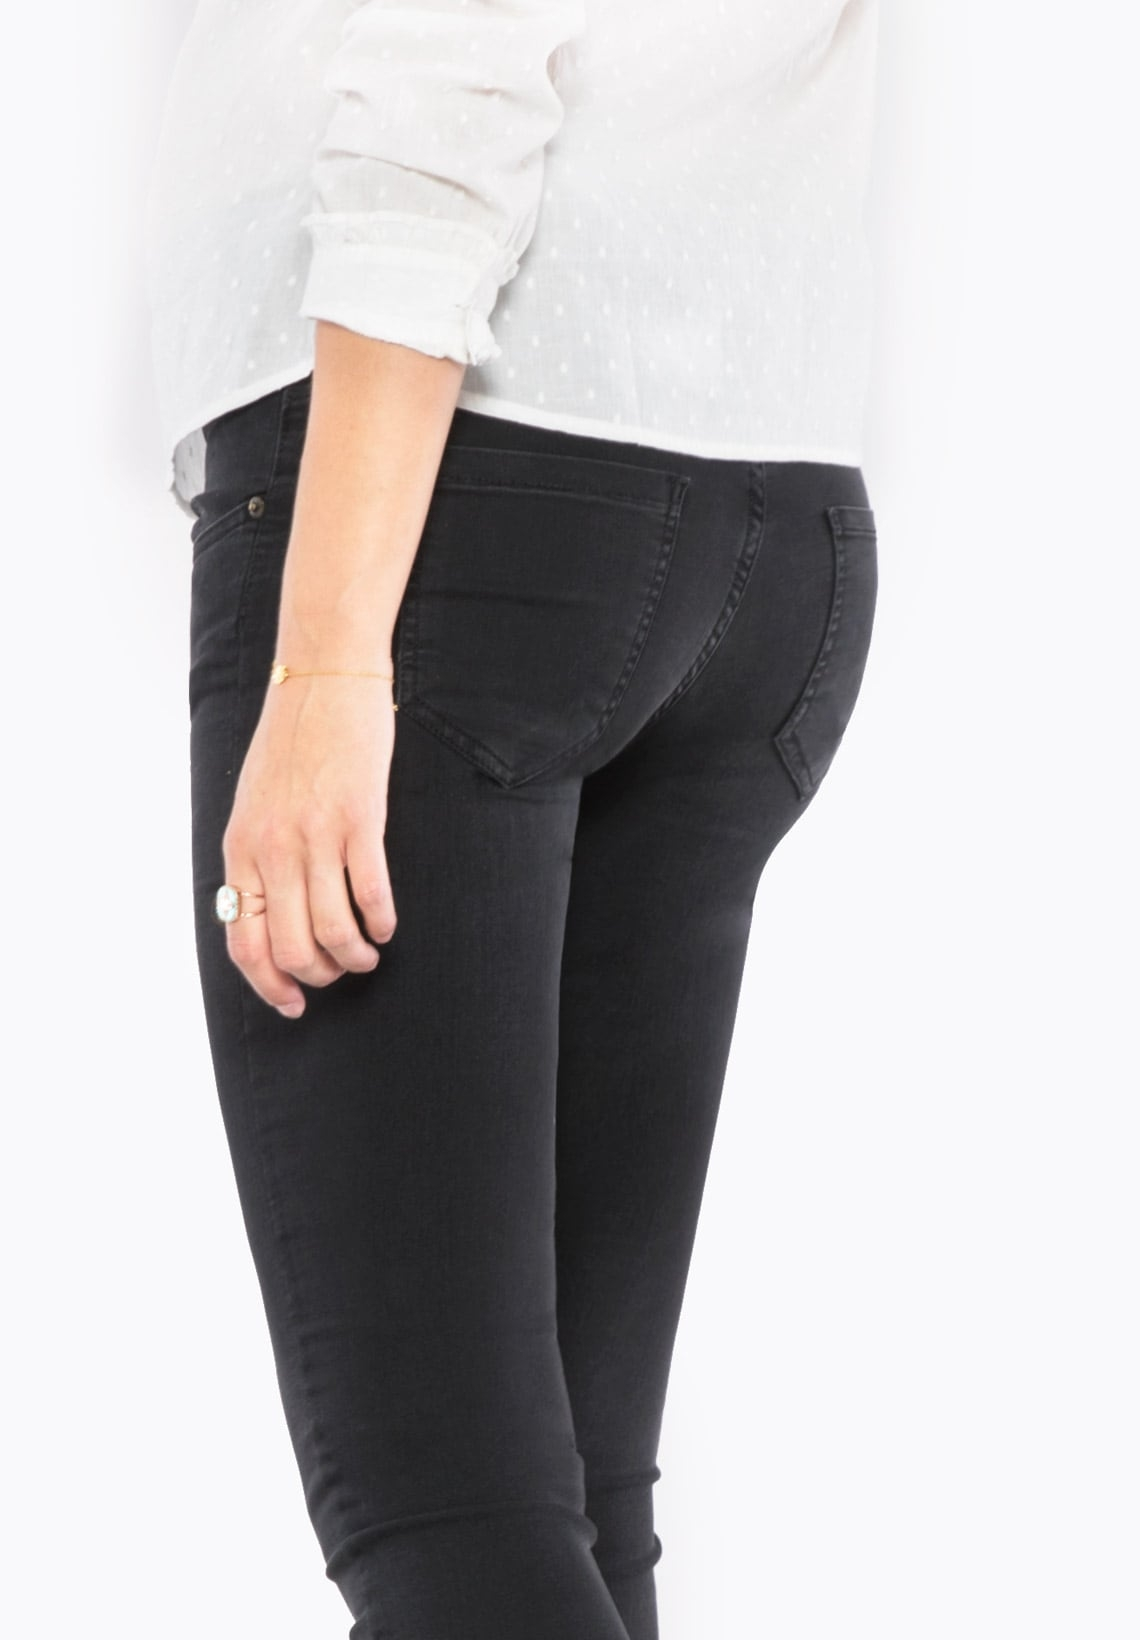 ecf64e358ef0d GARRY DELUXE - Bootcut maternity jeans with over belly band - Envie de  Fraise ...